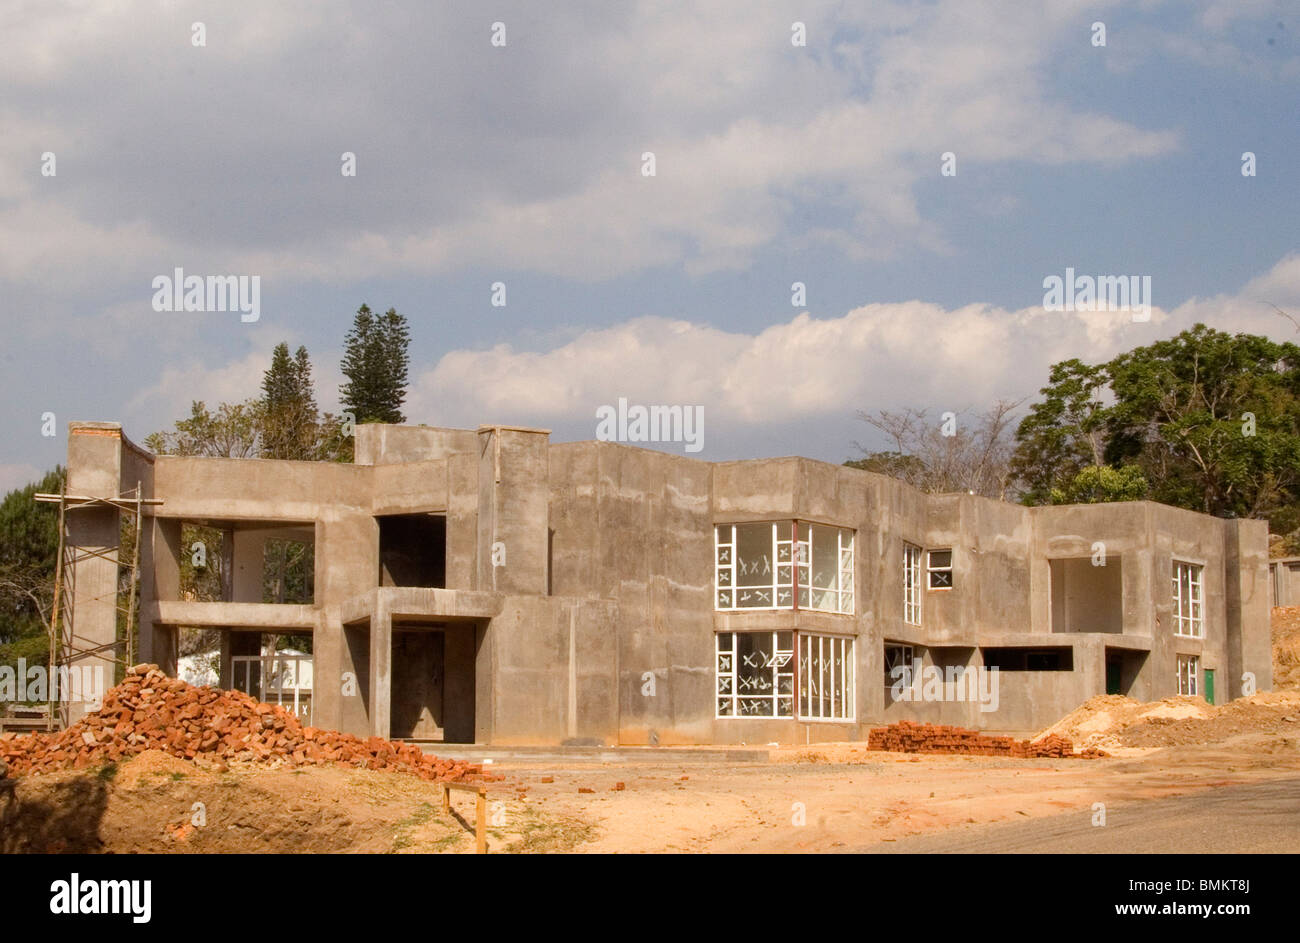 Africa Malawi Blantyre Modern Style House Under Construction